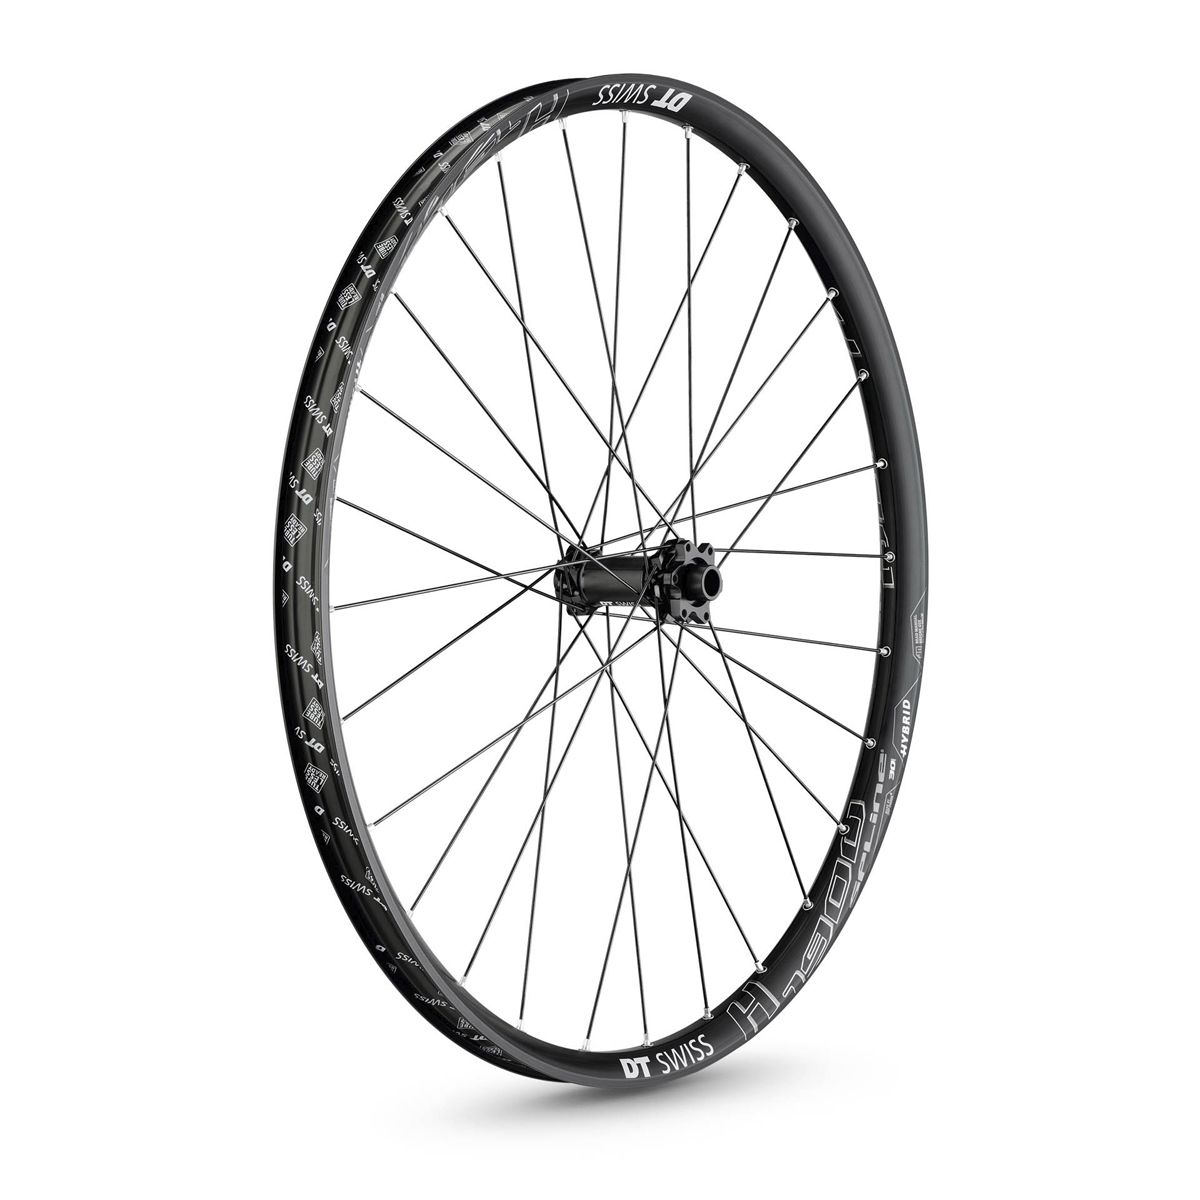 H-1900 Spline 30 Disc 6-bolt BOOST E-MTB front wheel